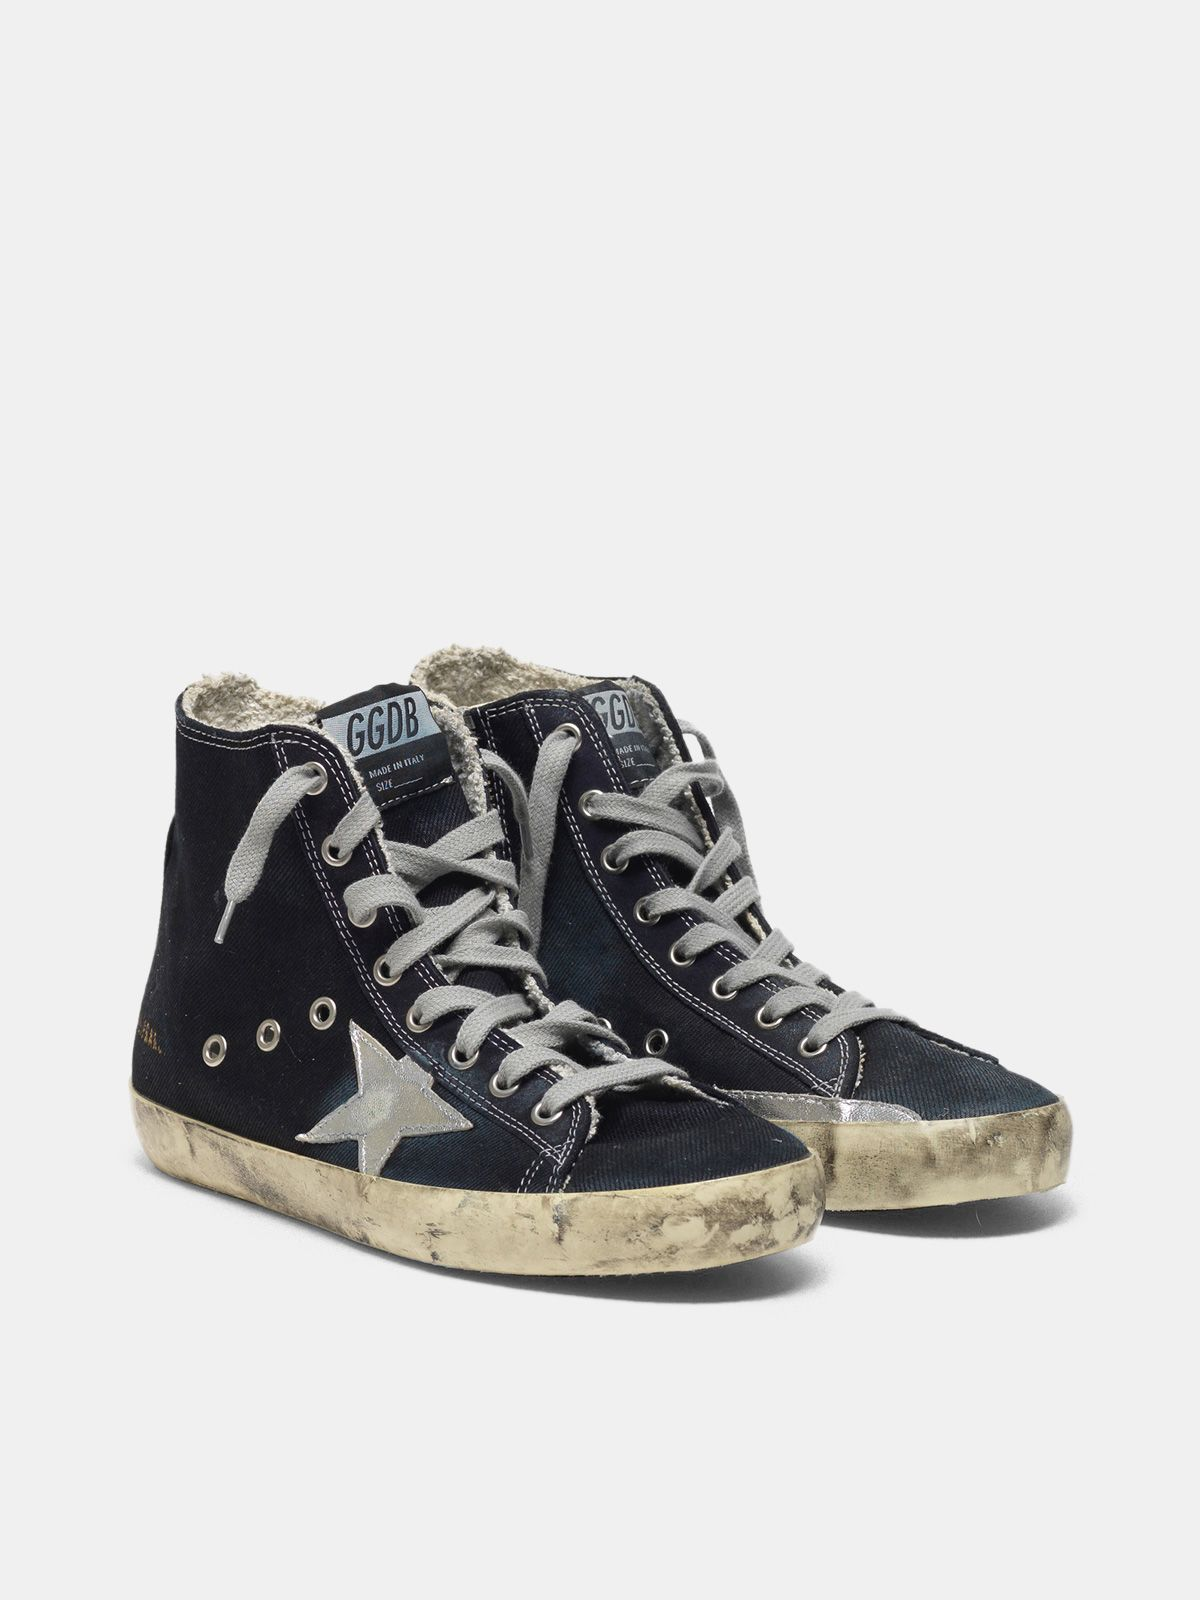 Golden Goose - Francy sneakers in canvas with laminated star in